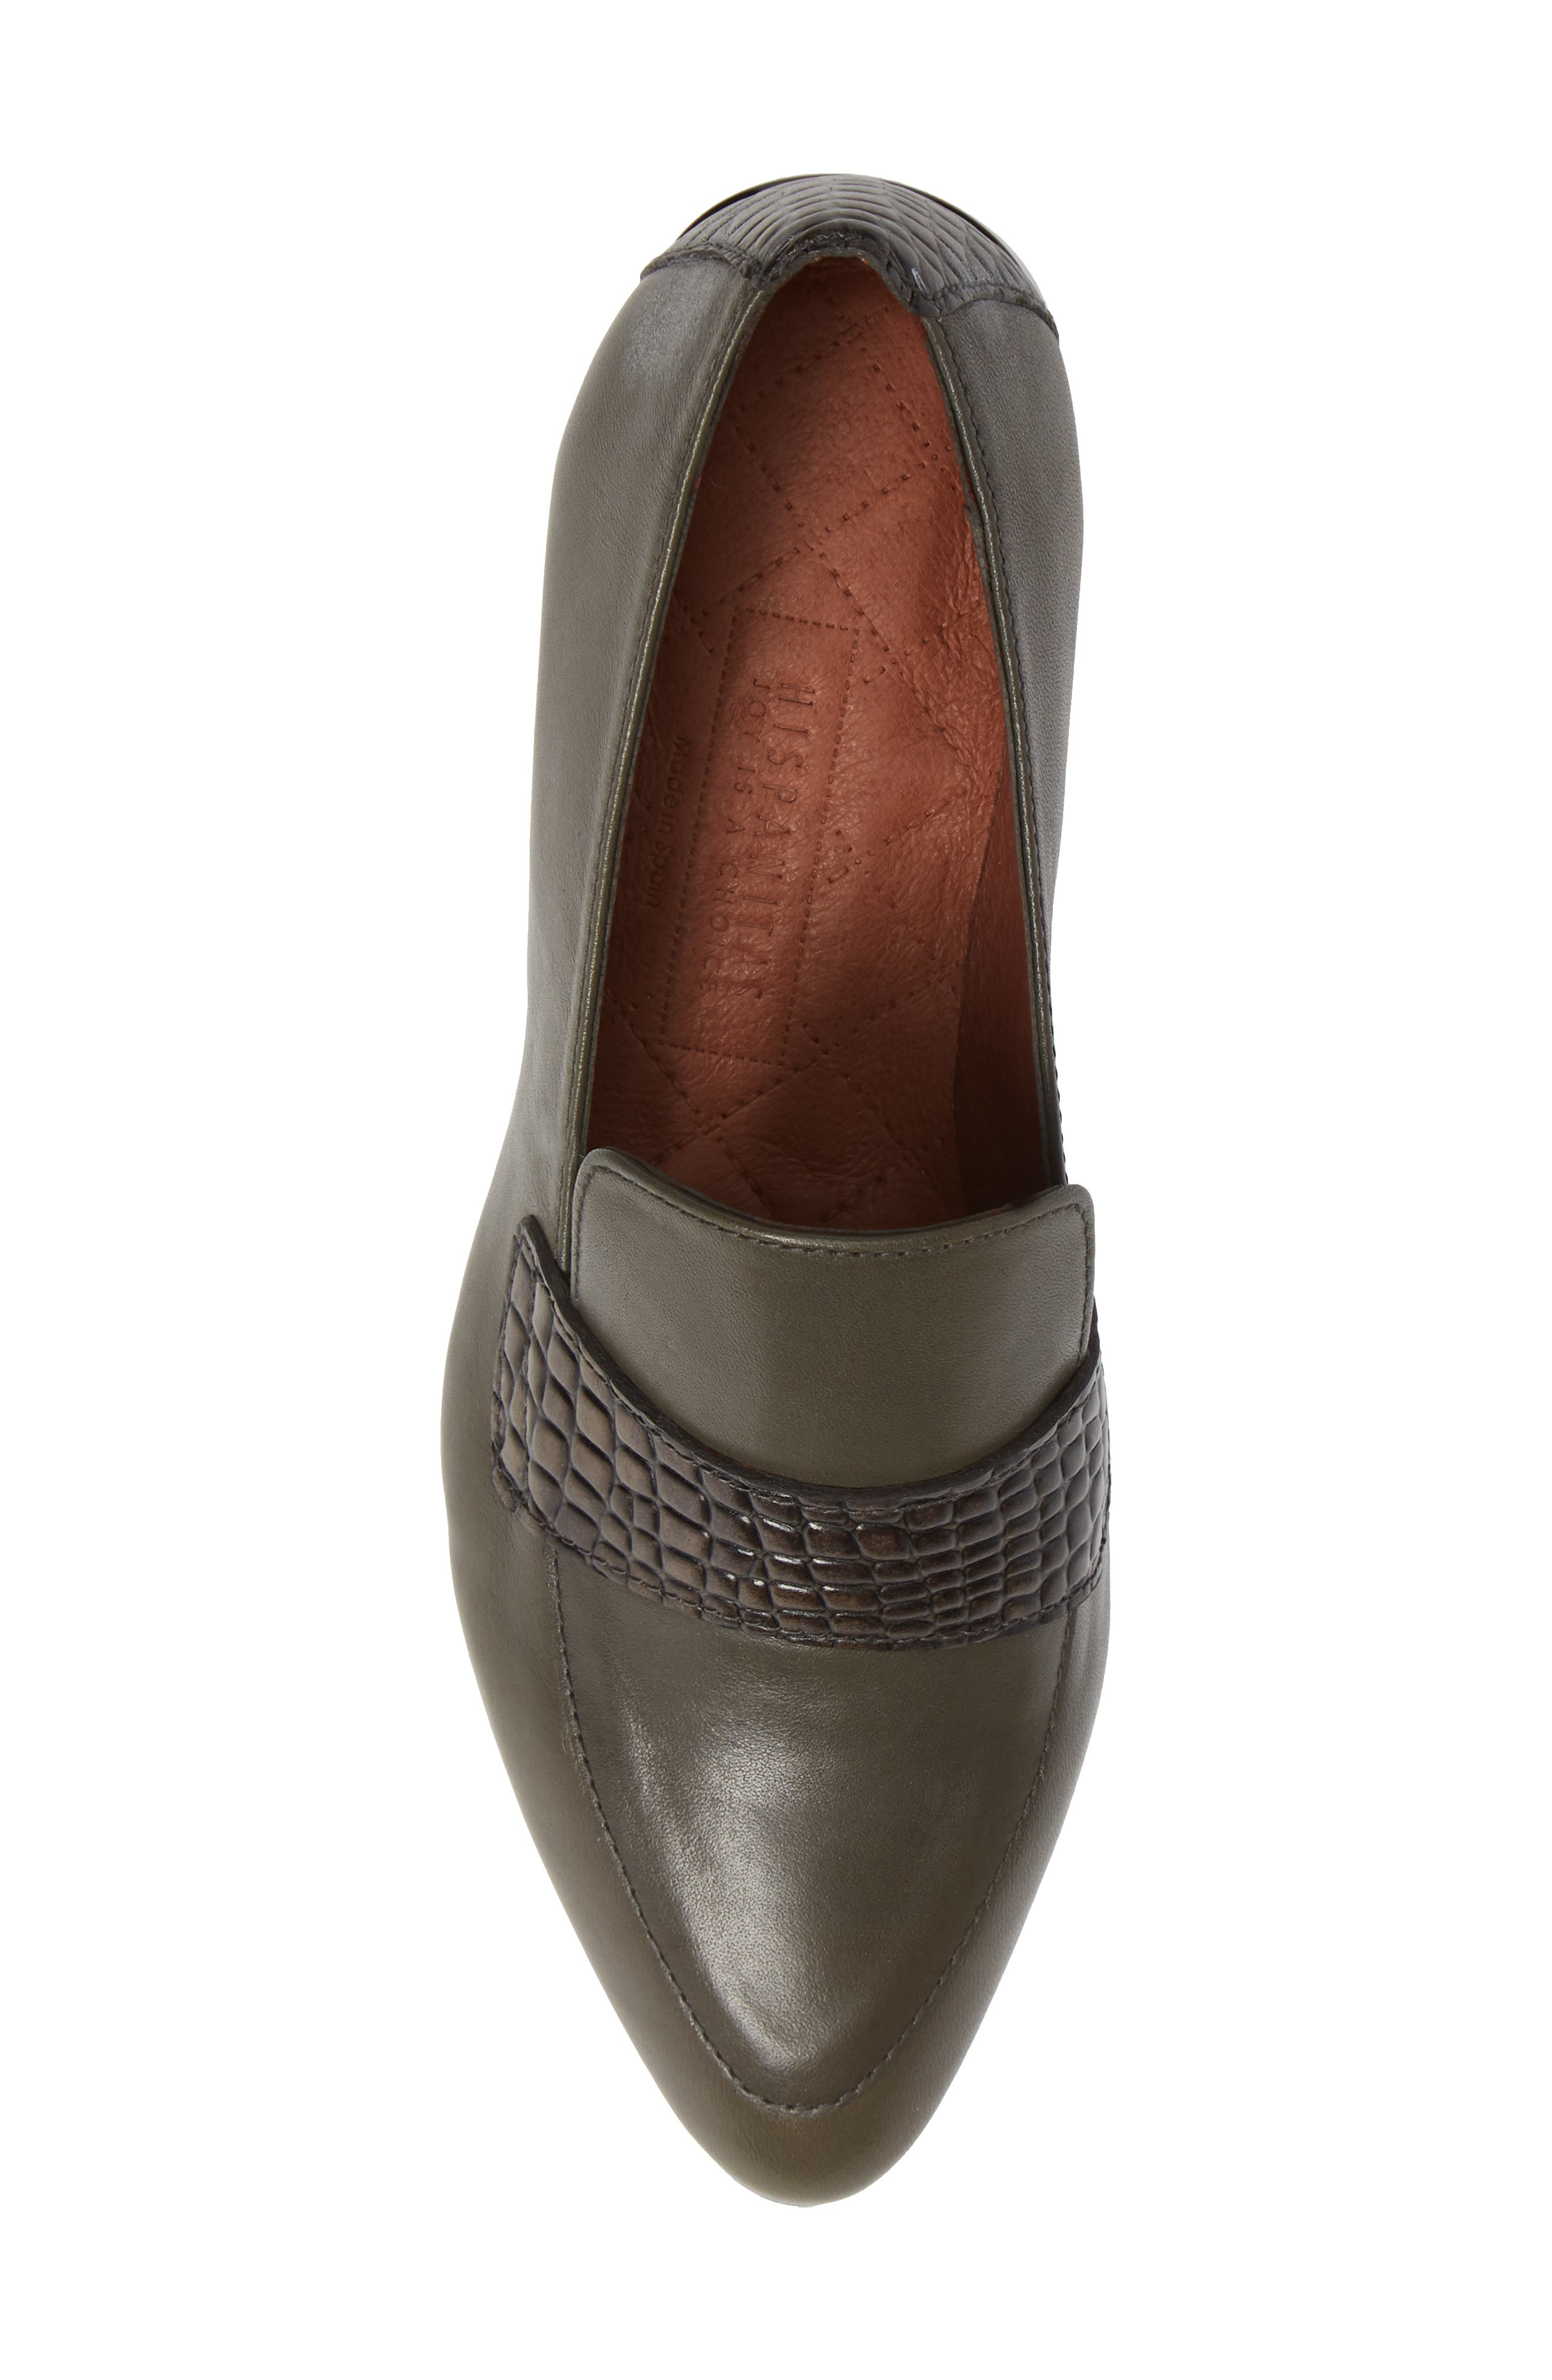 HISPANITAS, Gabrianna Block Heel Loafer, Alternate thumbnail 5, color, SOHO ARMY/ CAIMAN ARMY LEATHER